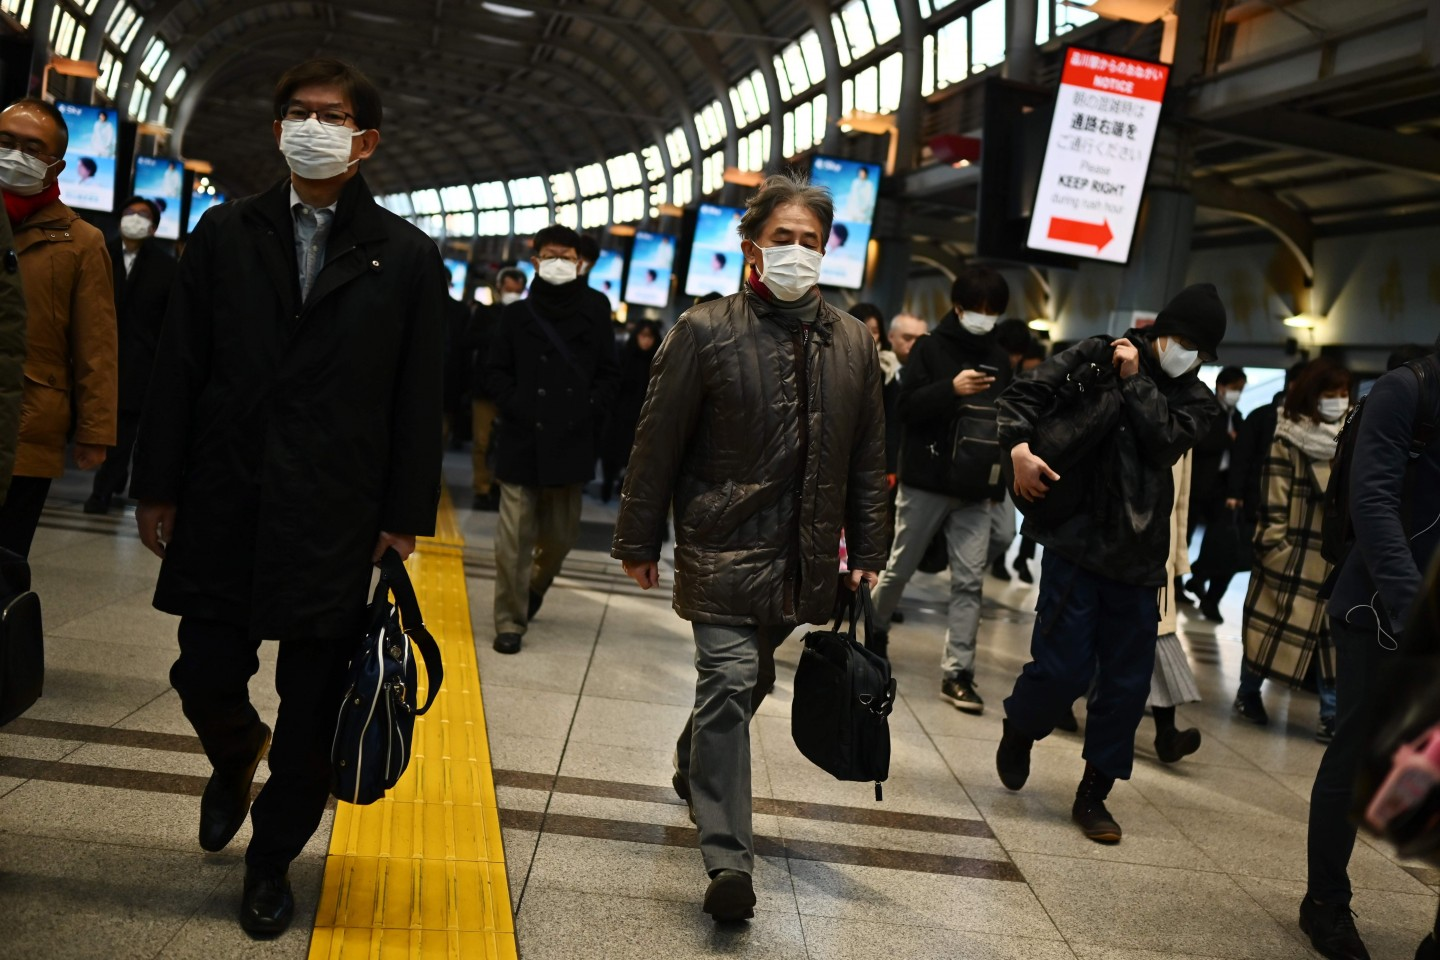 Mask-clad commuters make their way to work during the morning rush hour at the Shinagawa train station in Tokyo on 28 February 2020. (Charly Triballeau/AFP)